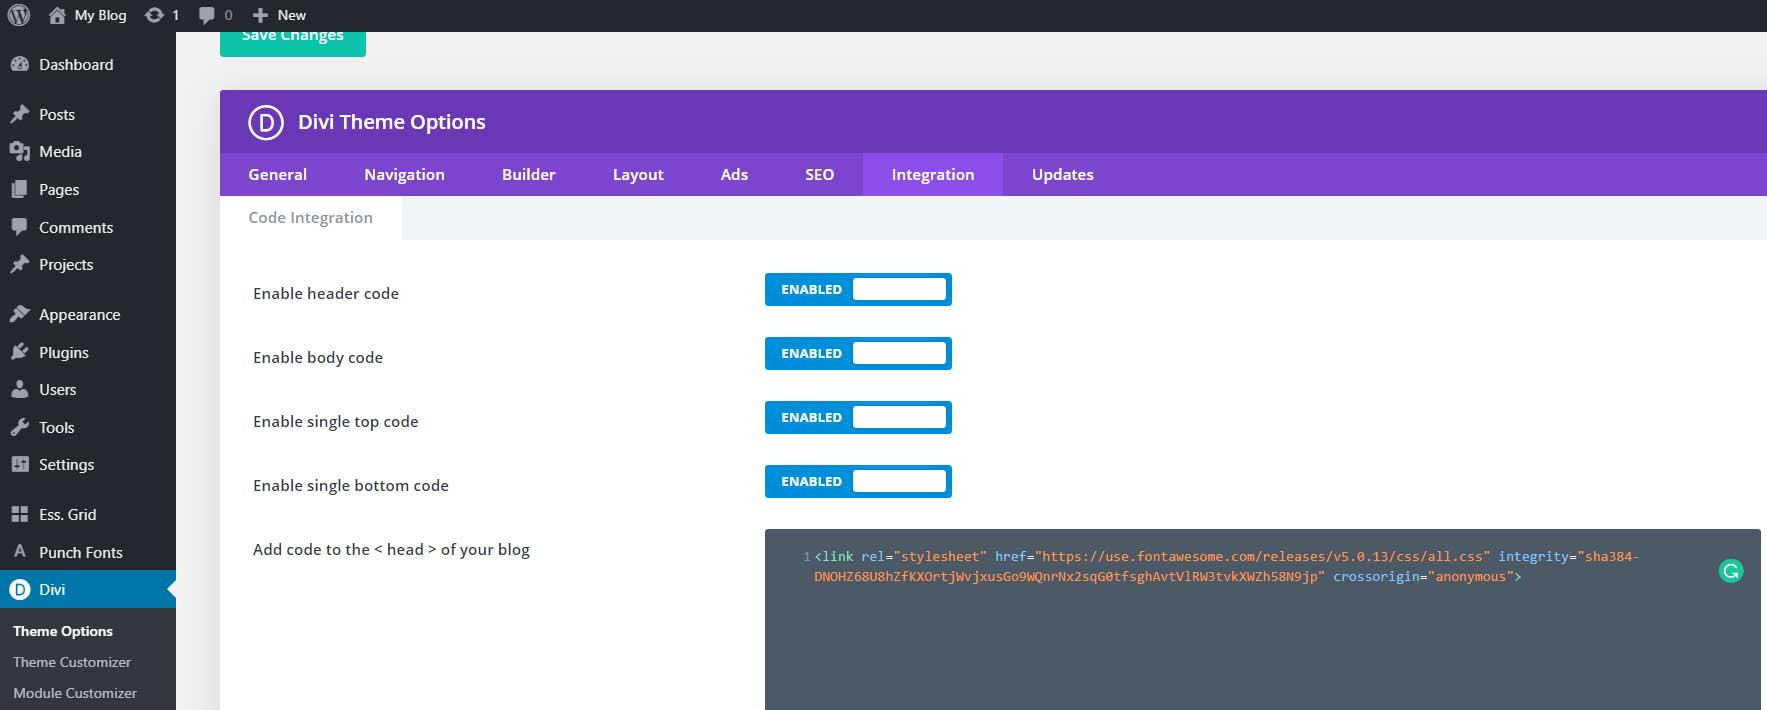 Font awesome code integration